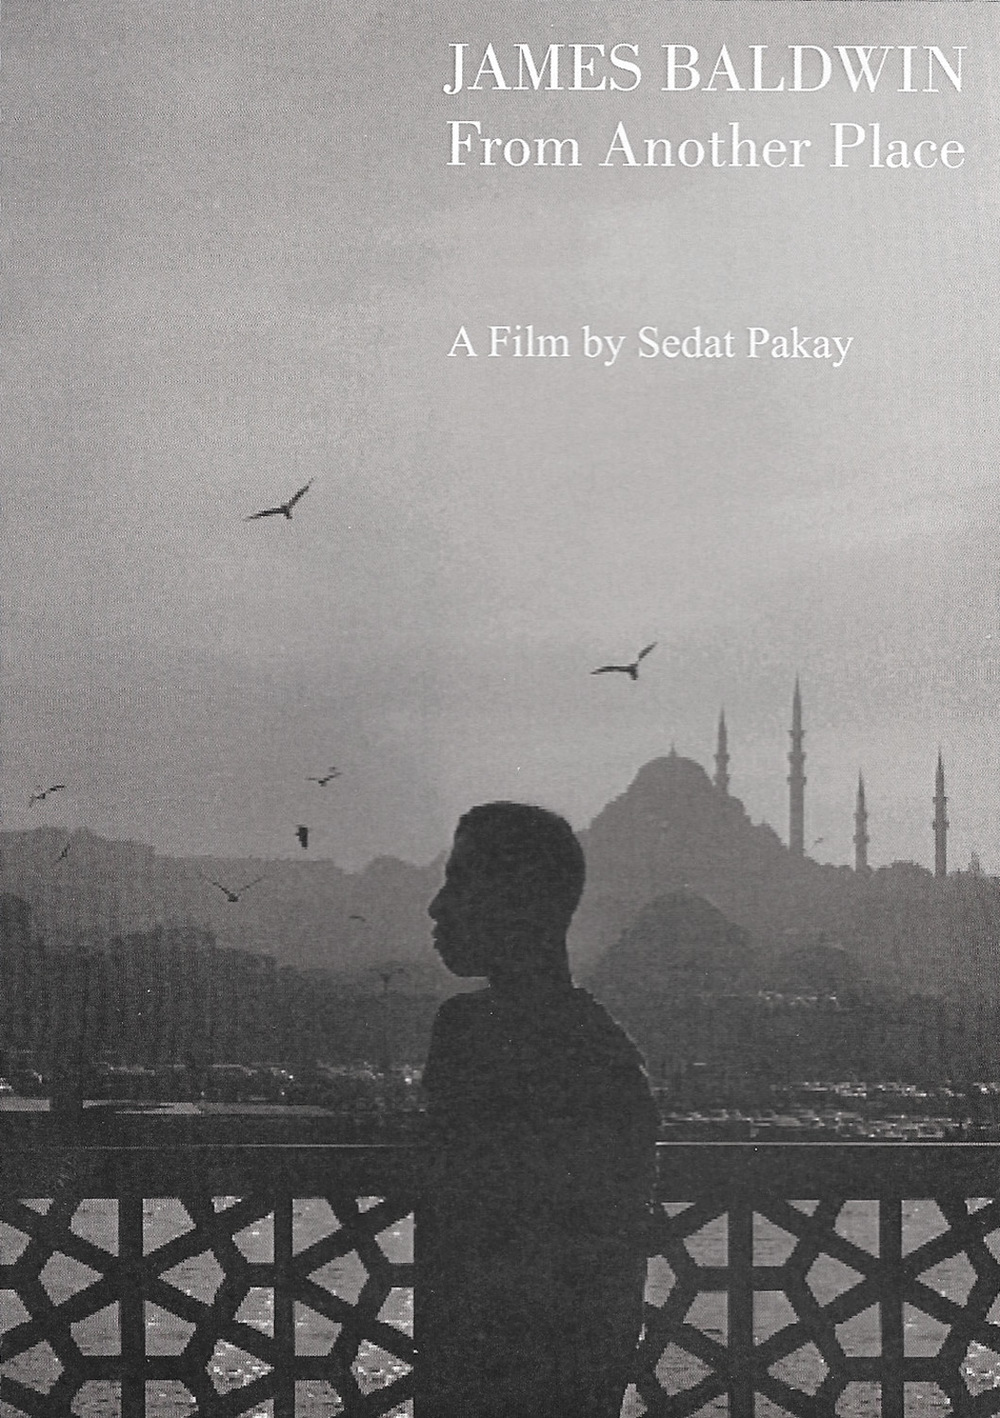 James Baldwin: From Another Place (Director: Sedat Pakay)